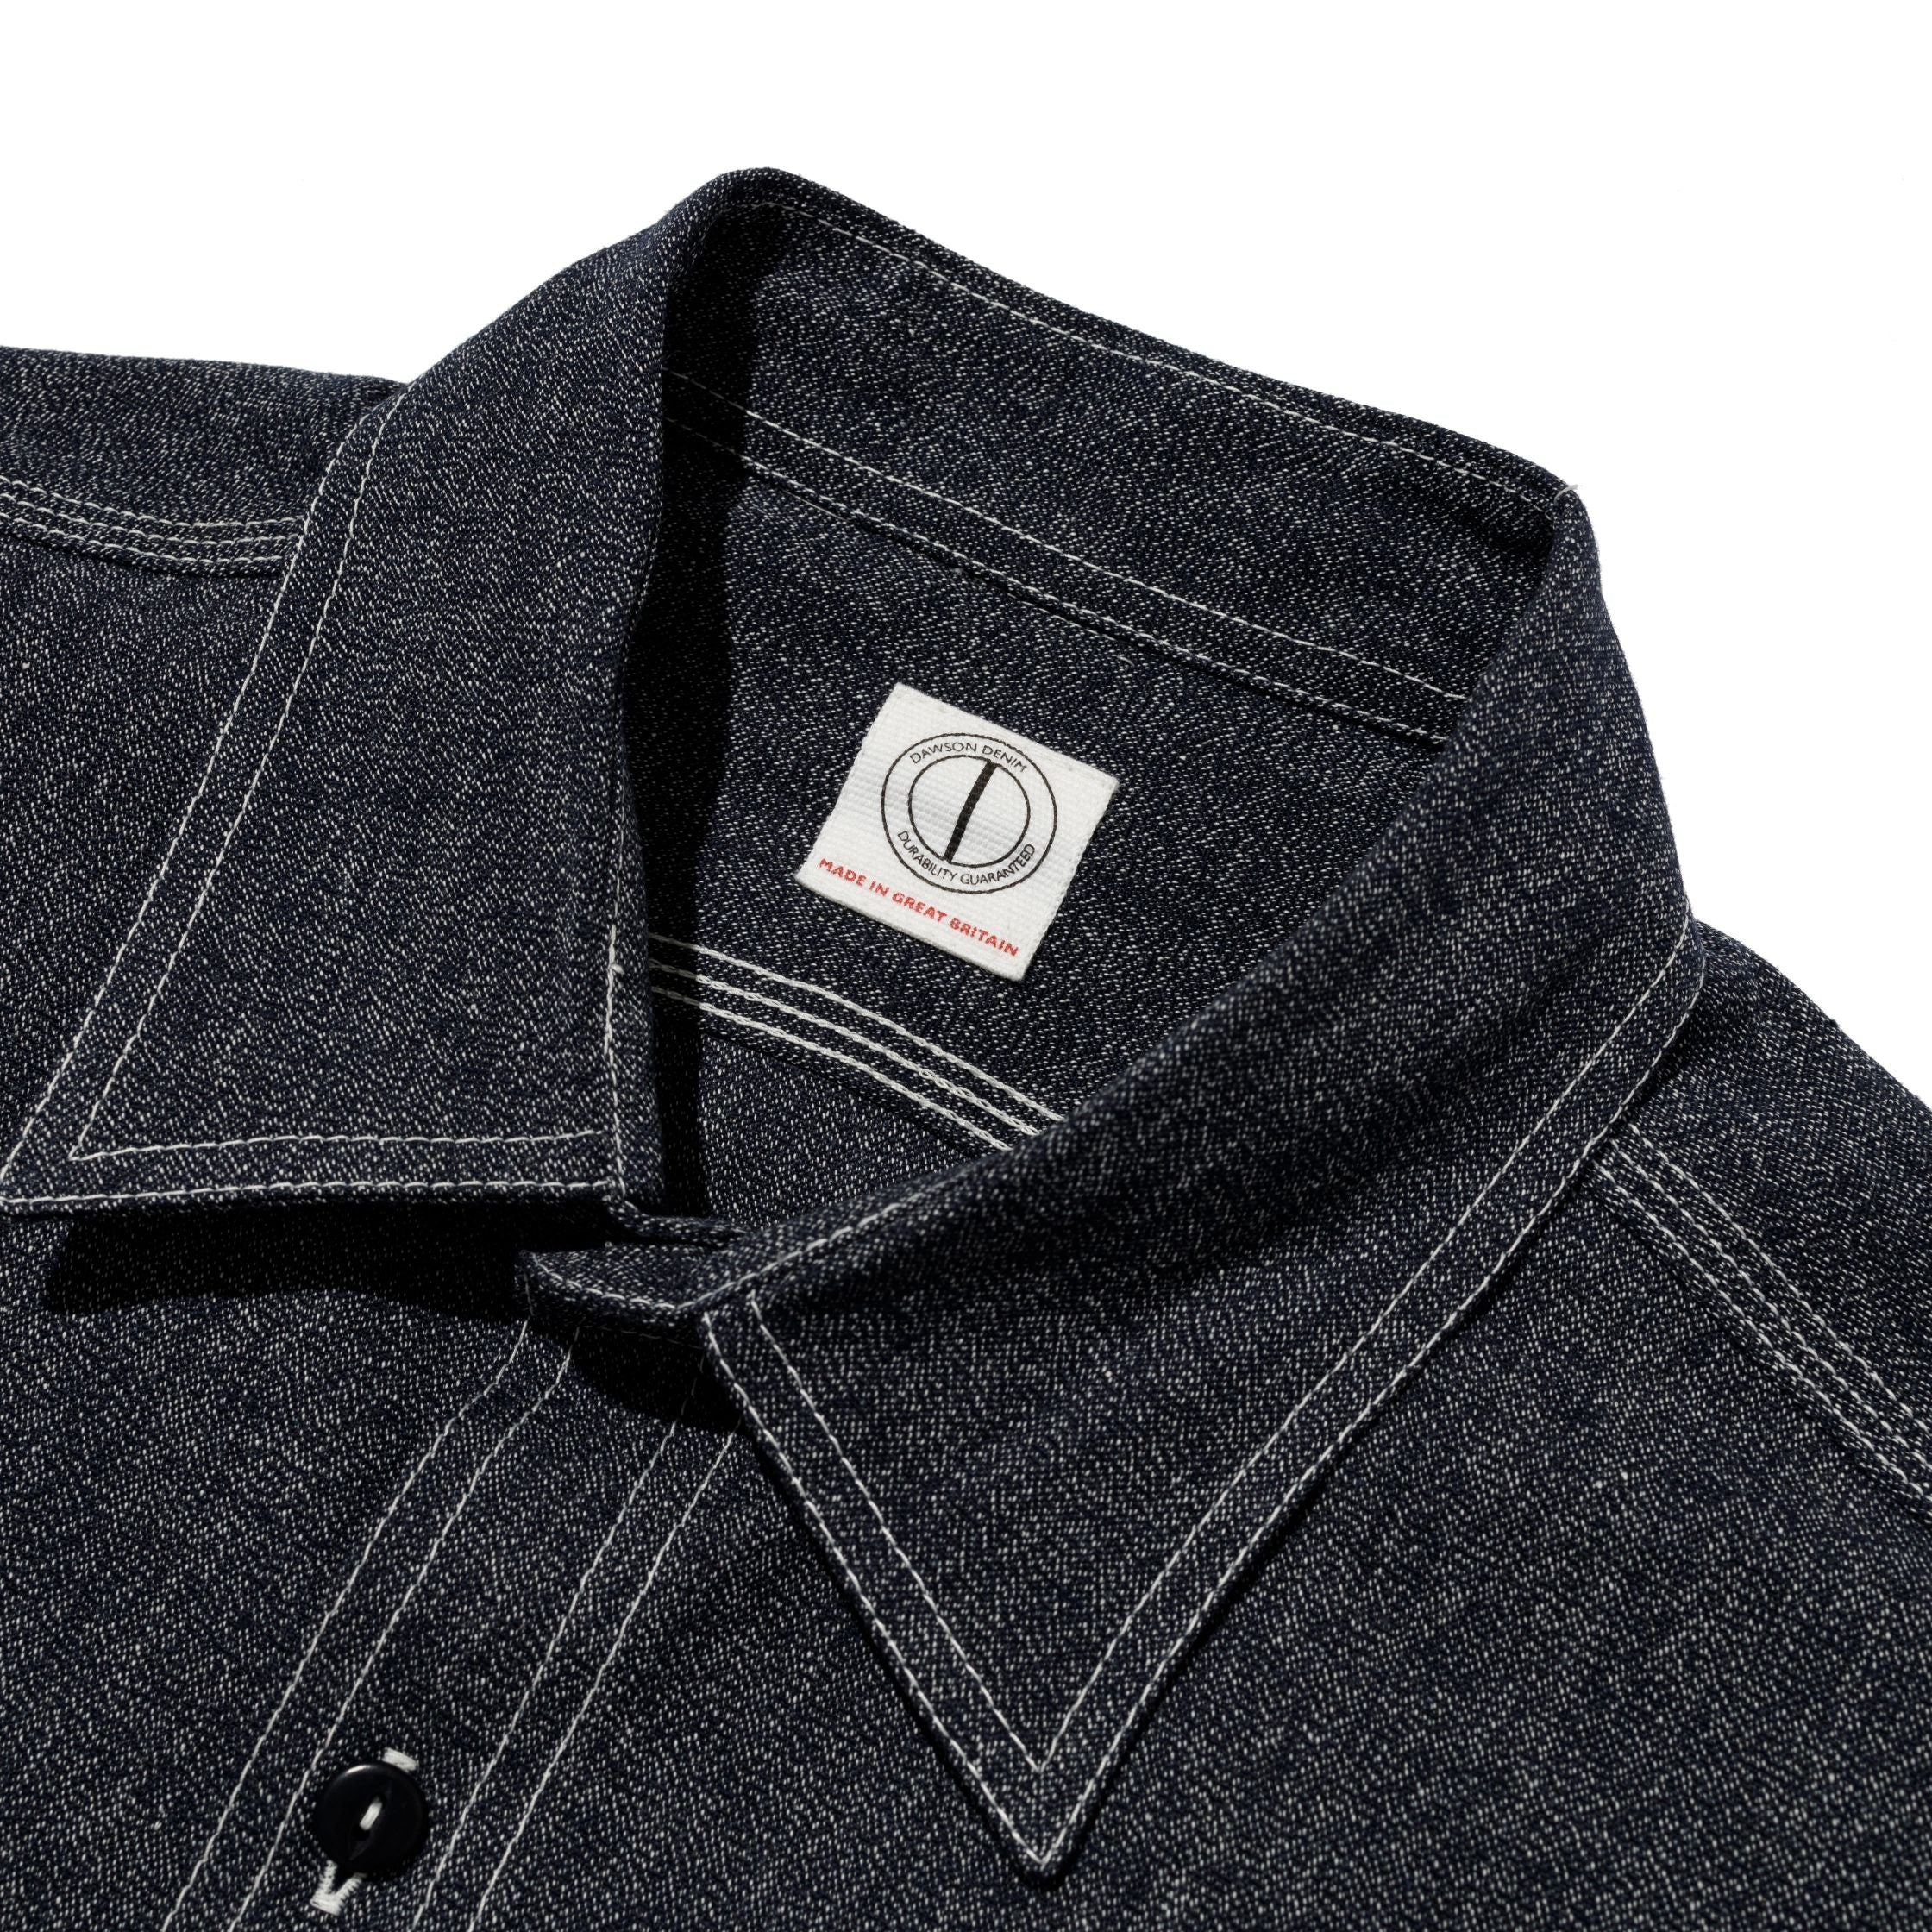 Dawson Denim x Triplstitched Workwear Shirt - 7oz Salt and Pepper Twisted Yarn